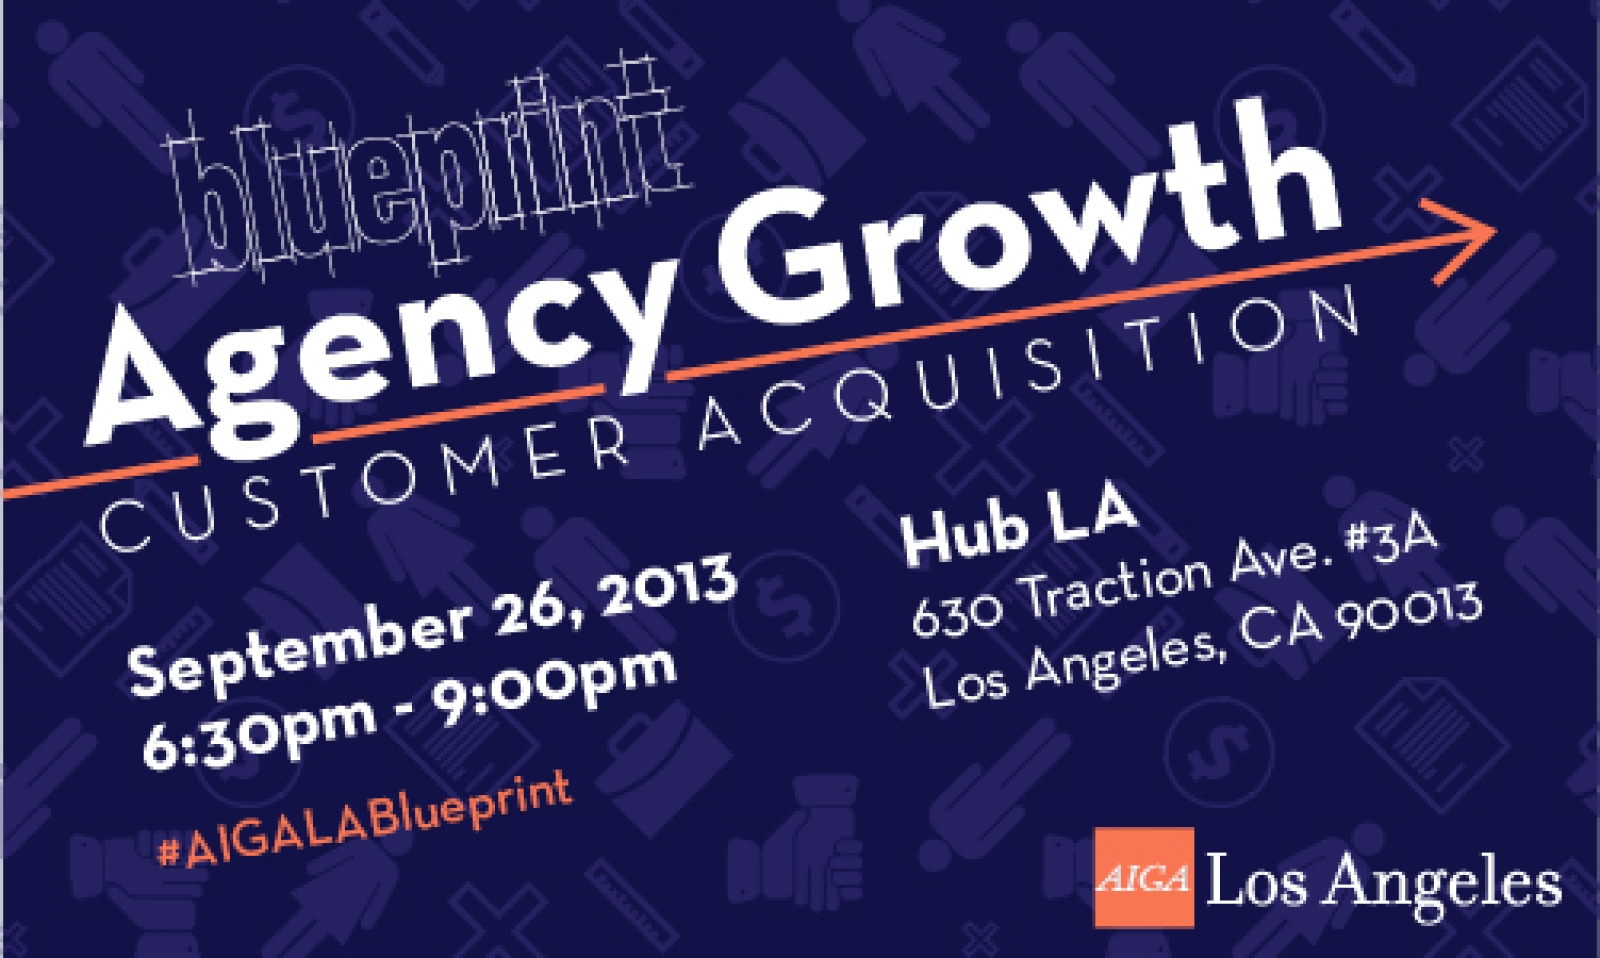 Blueprint agency growth customer aquisition aiga los angeles event image malvernweather Choice Image